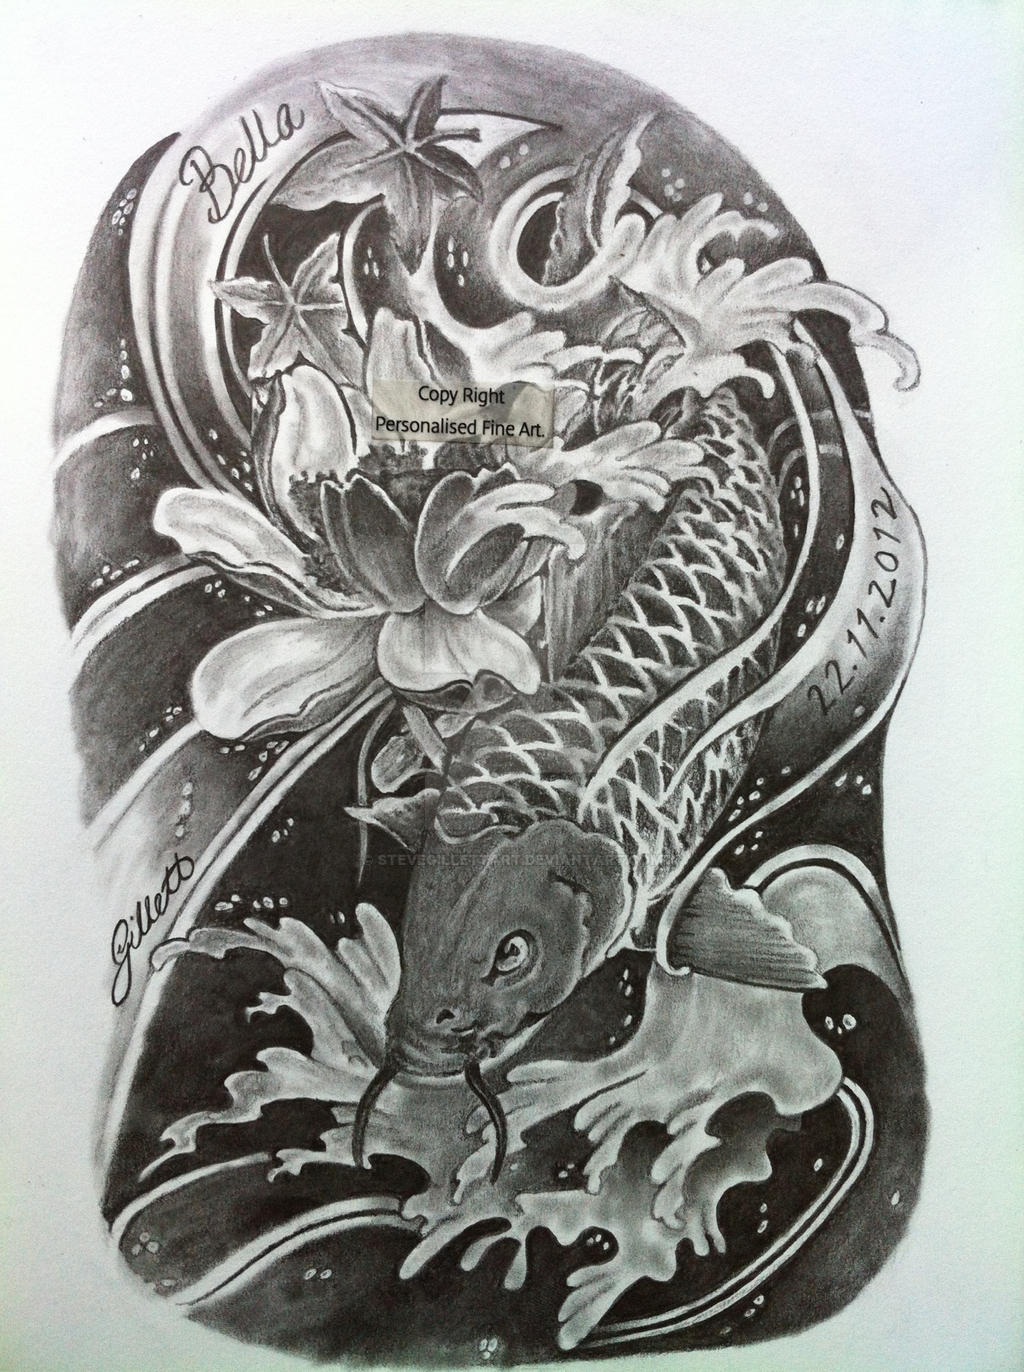 39 dragon coy carp 39 tattoo design 2013 drawing by for Coy carp tattoo